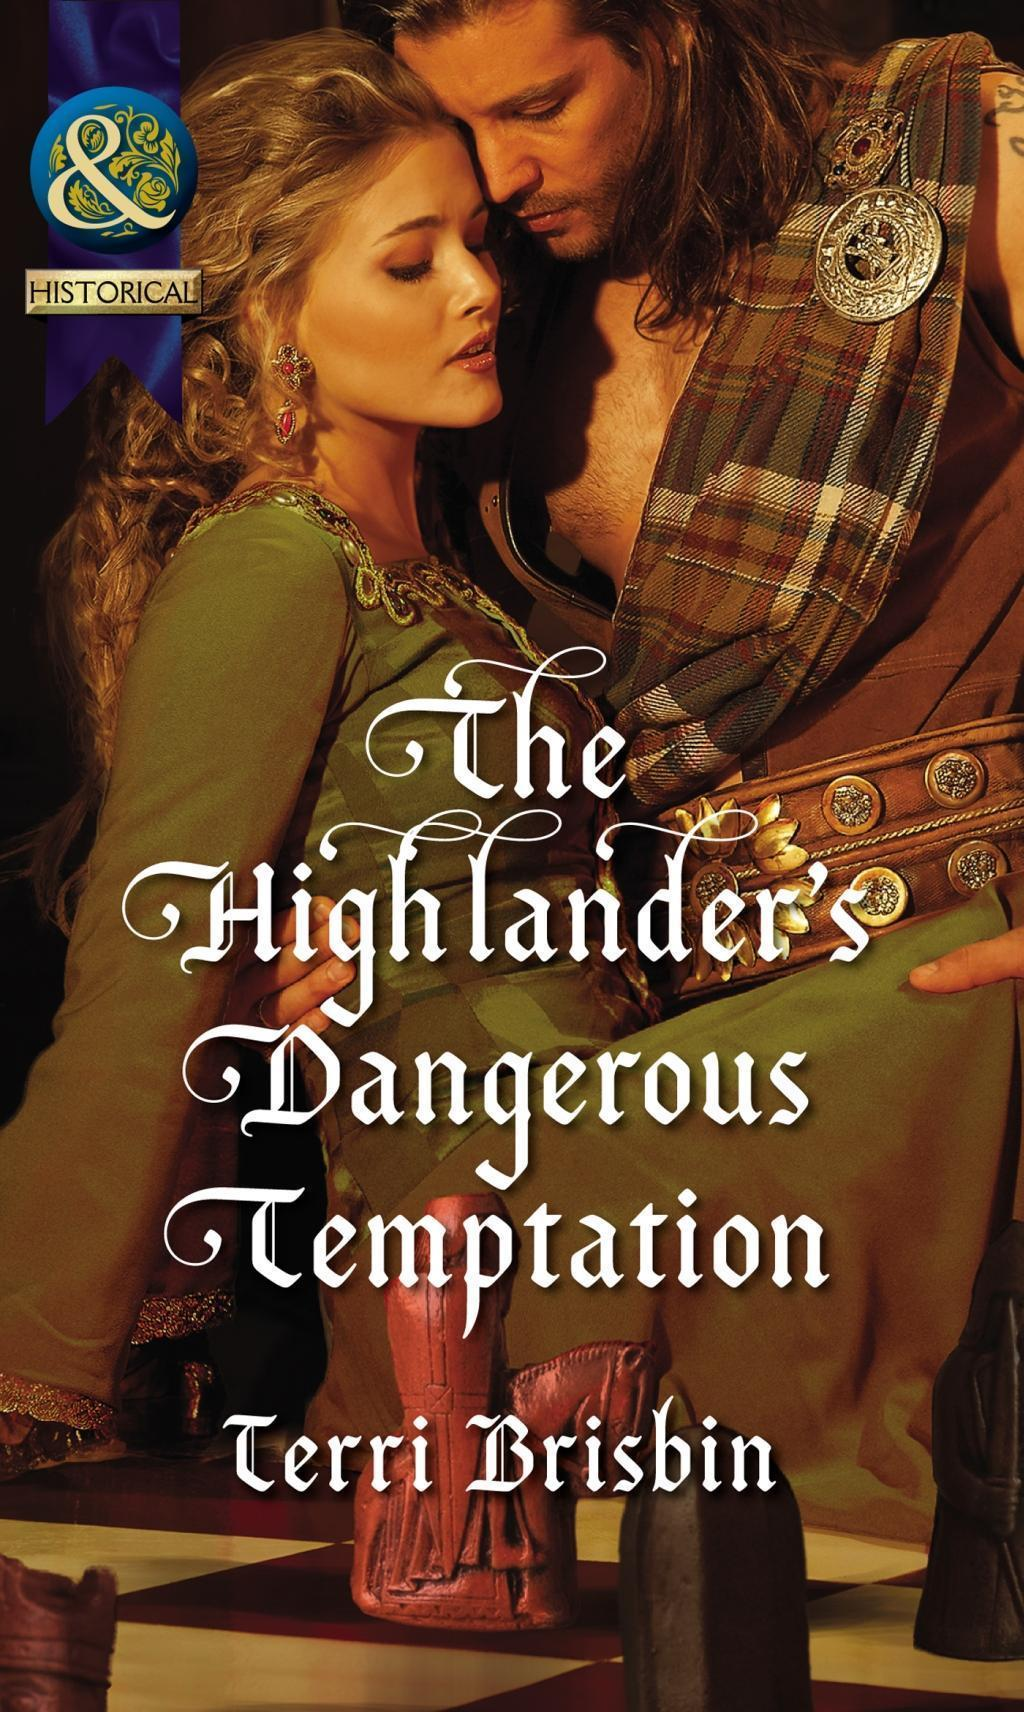 The Highlander's Dangerous Temptation (Mills & Boon Historical) (The MacLerie Clan, Book 3)